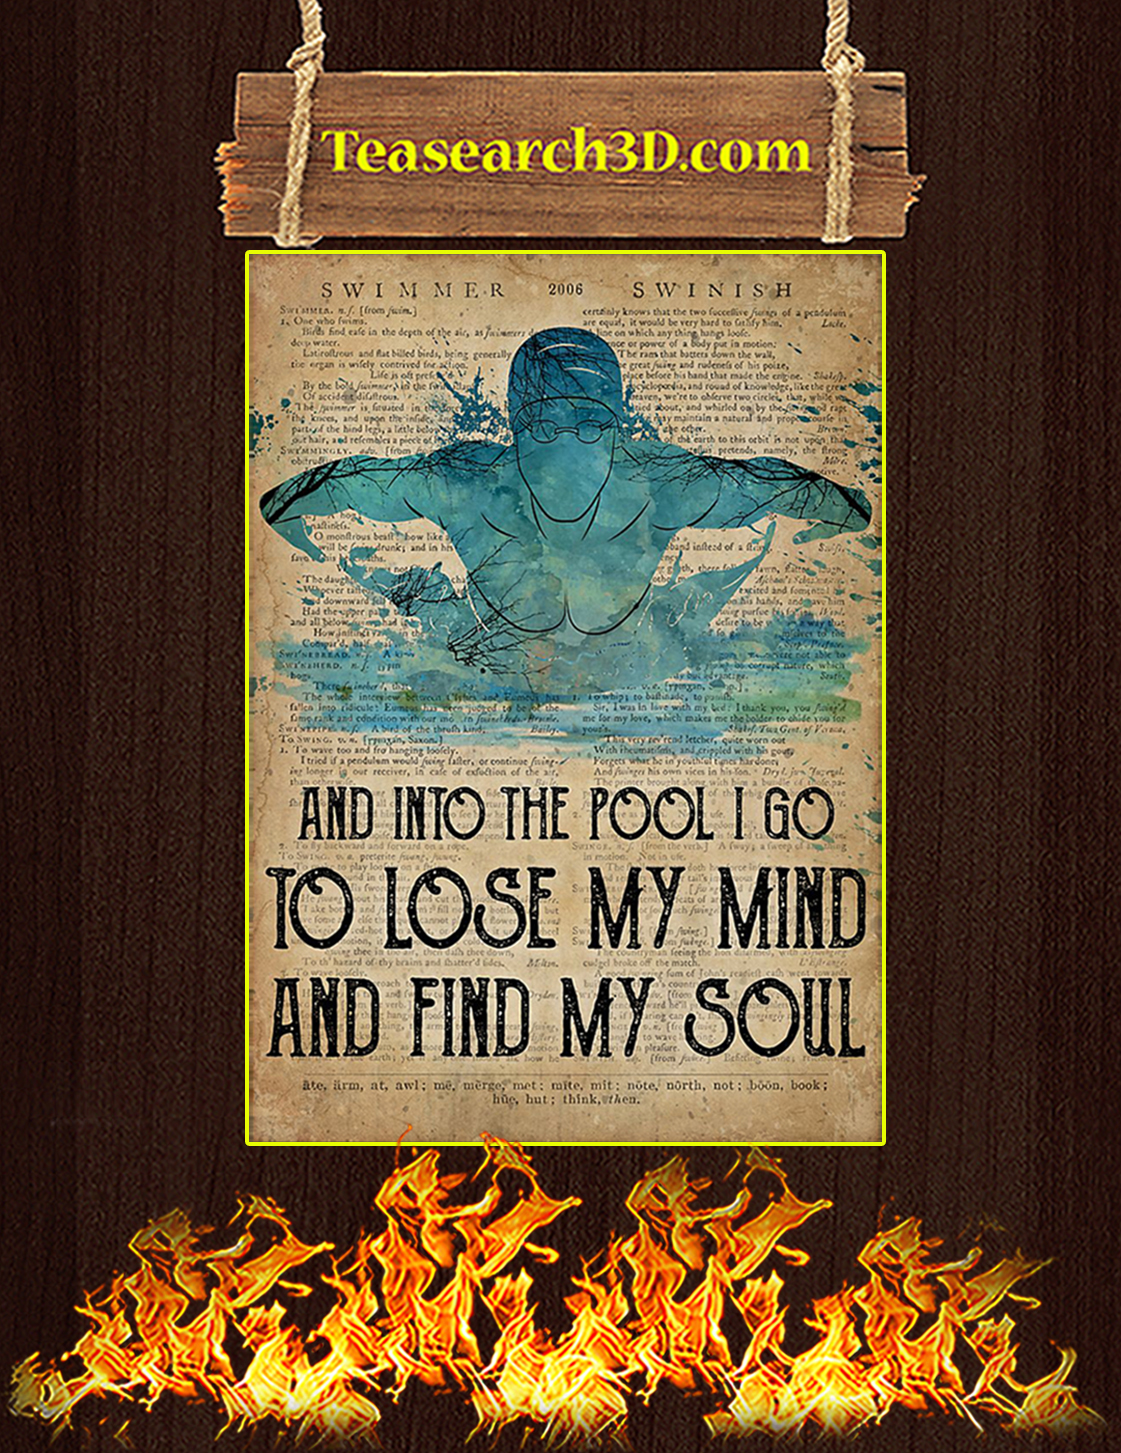 Swimming to loose my mind and find my soul poster A3